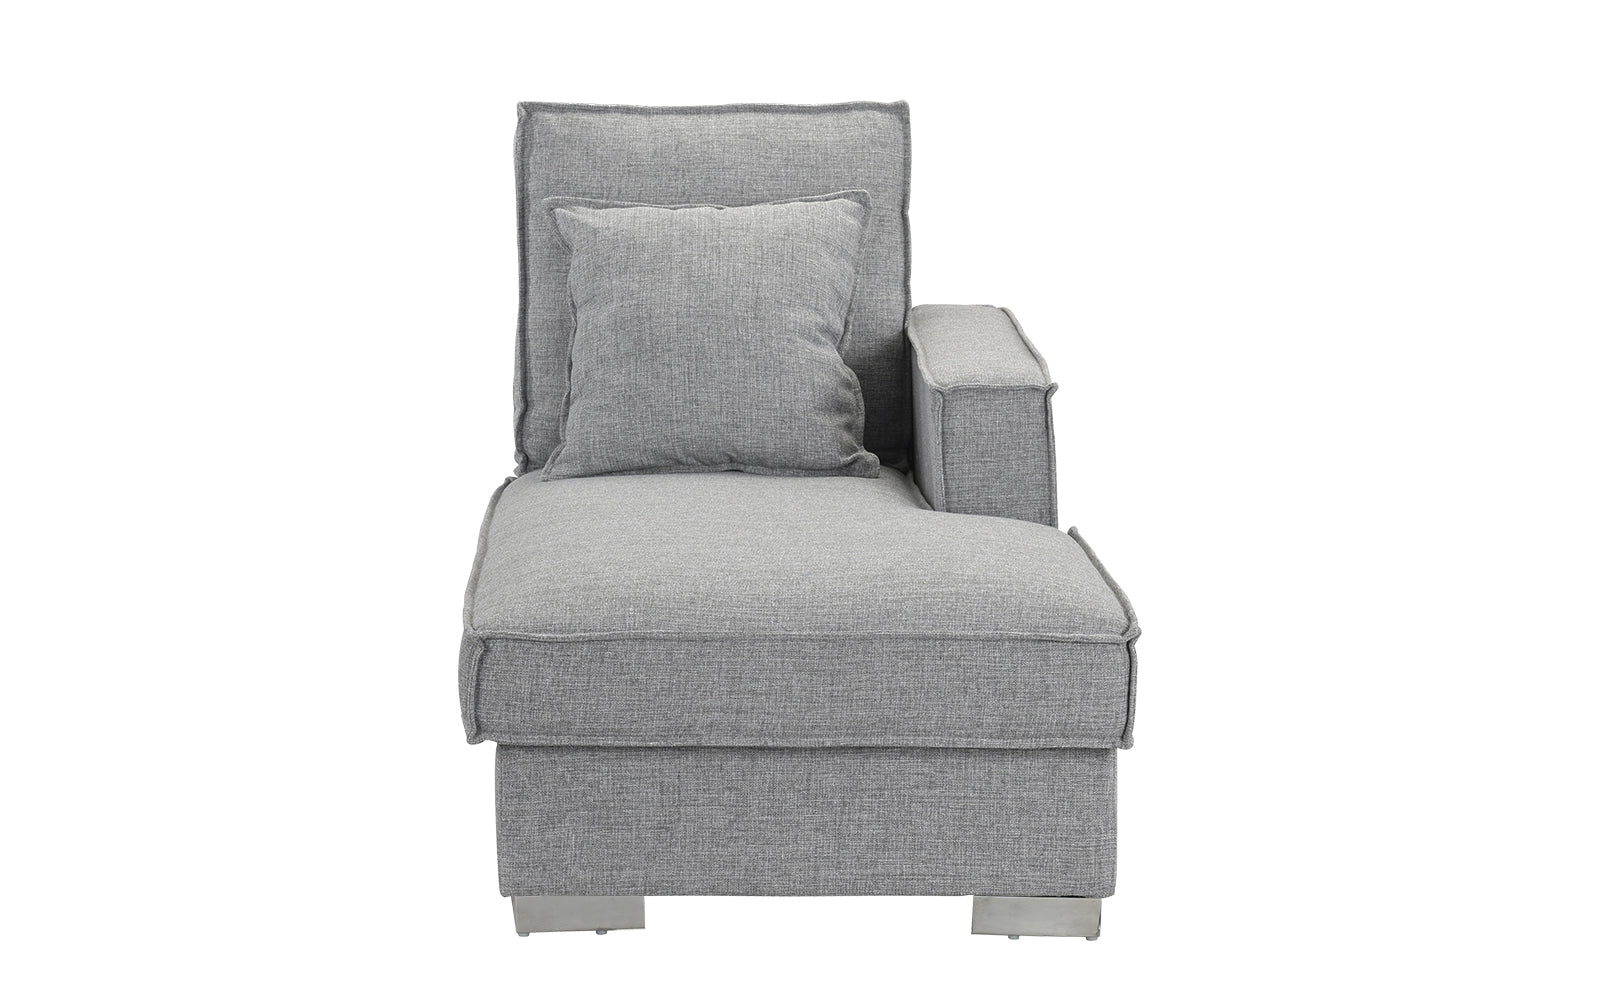 Linen Fabric Chaise Lounge Image